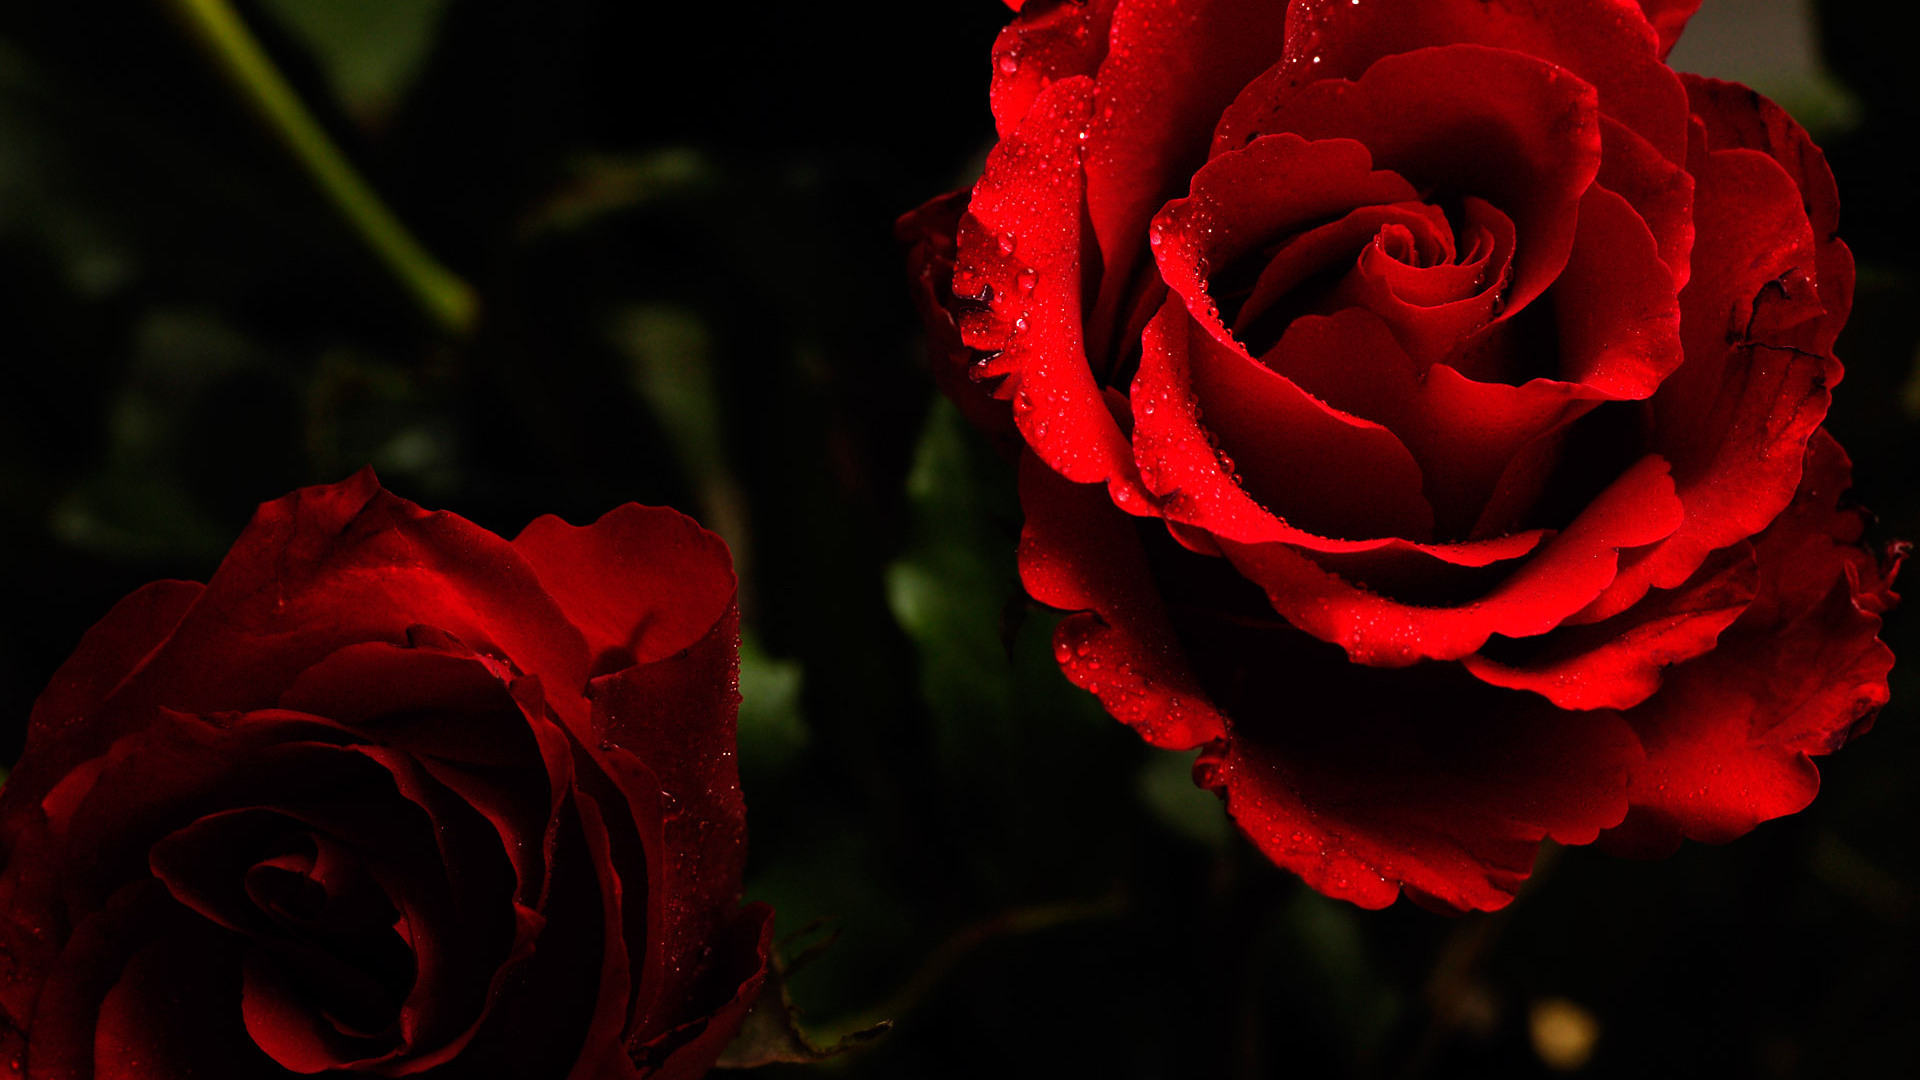 red roses on a dark background wallpapers and images   wallpapers 1920x1080